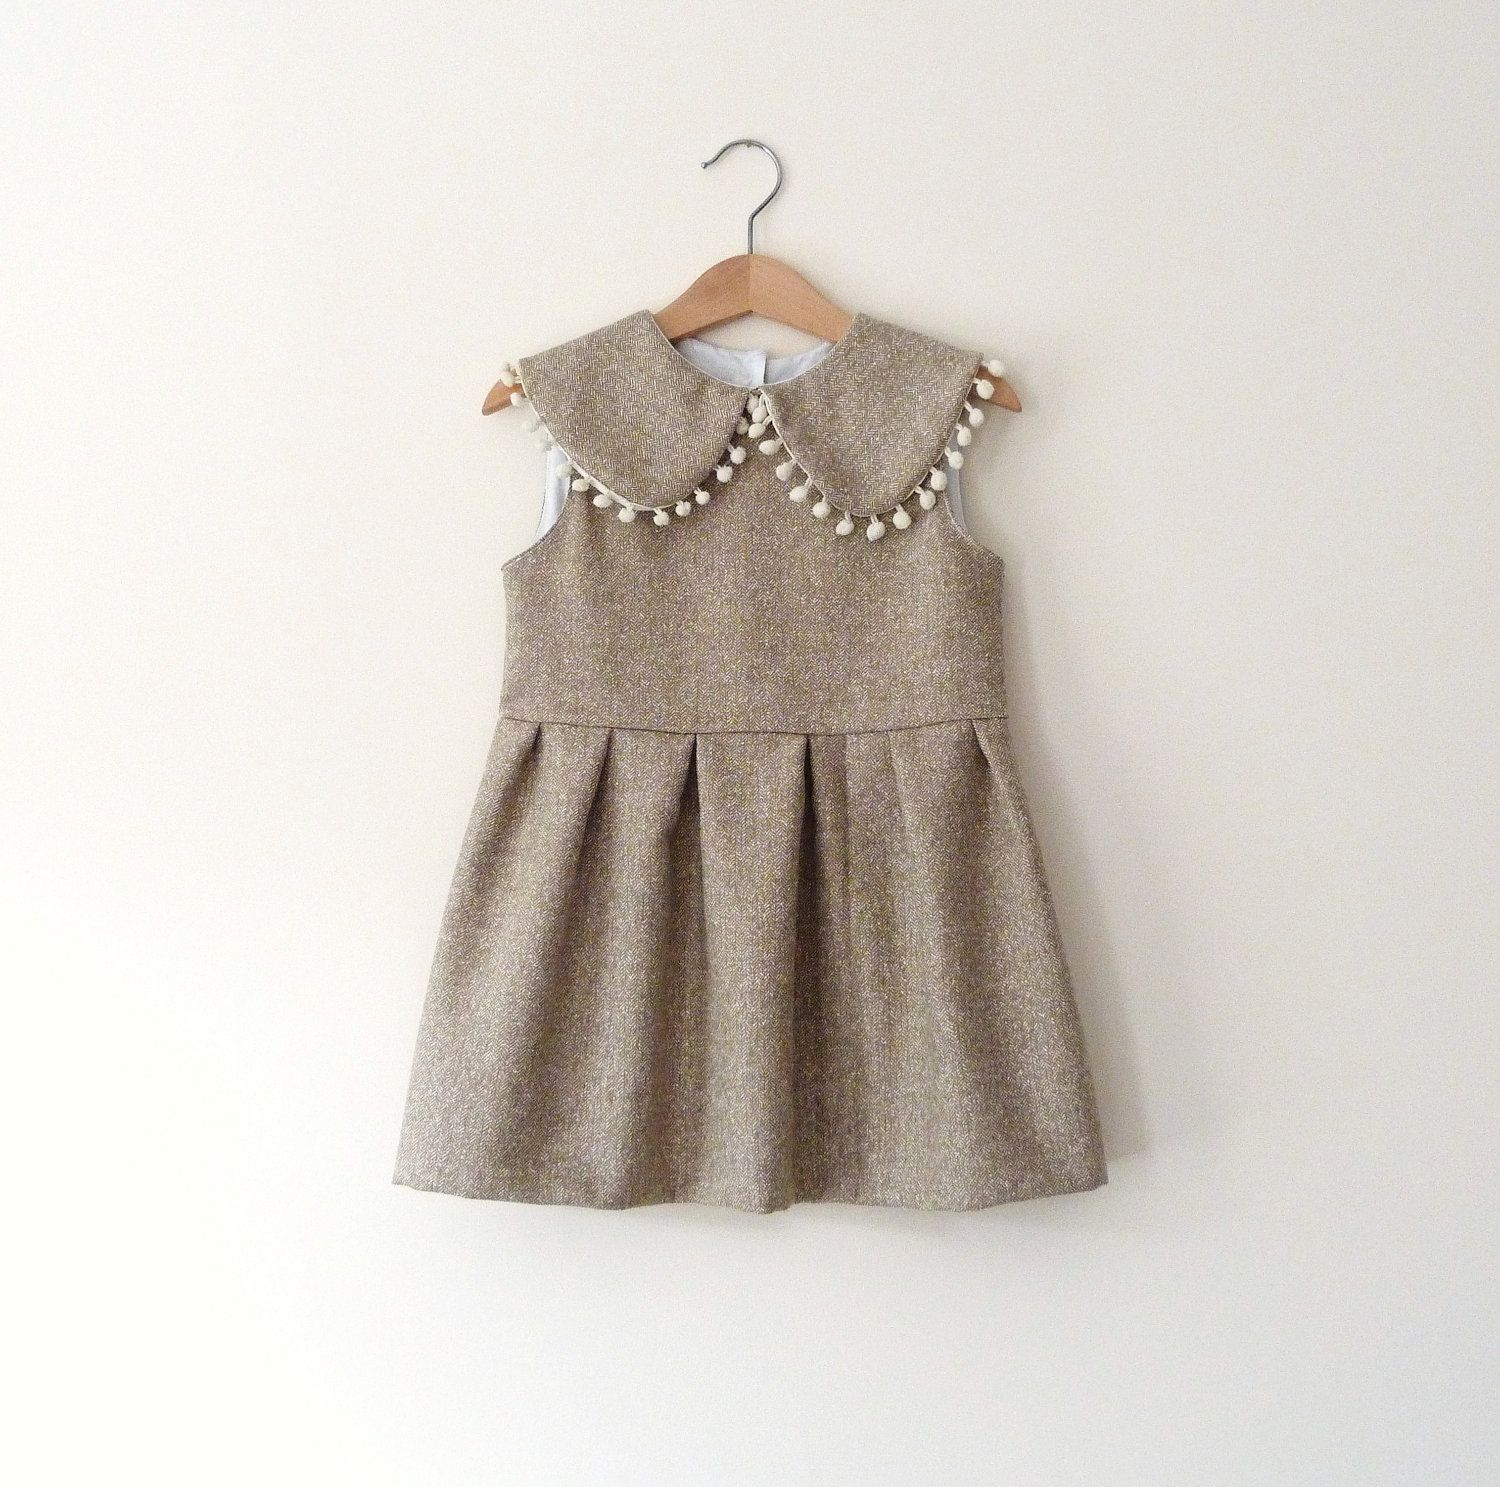 Fall Wool Dress in Sand With Peter Pan Collar and Pom-Poms. | For my ...